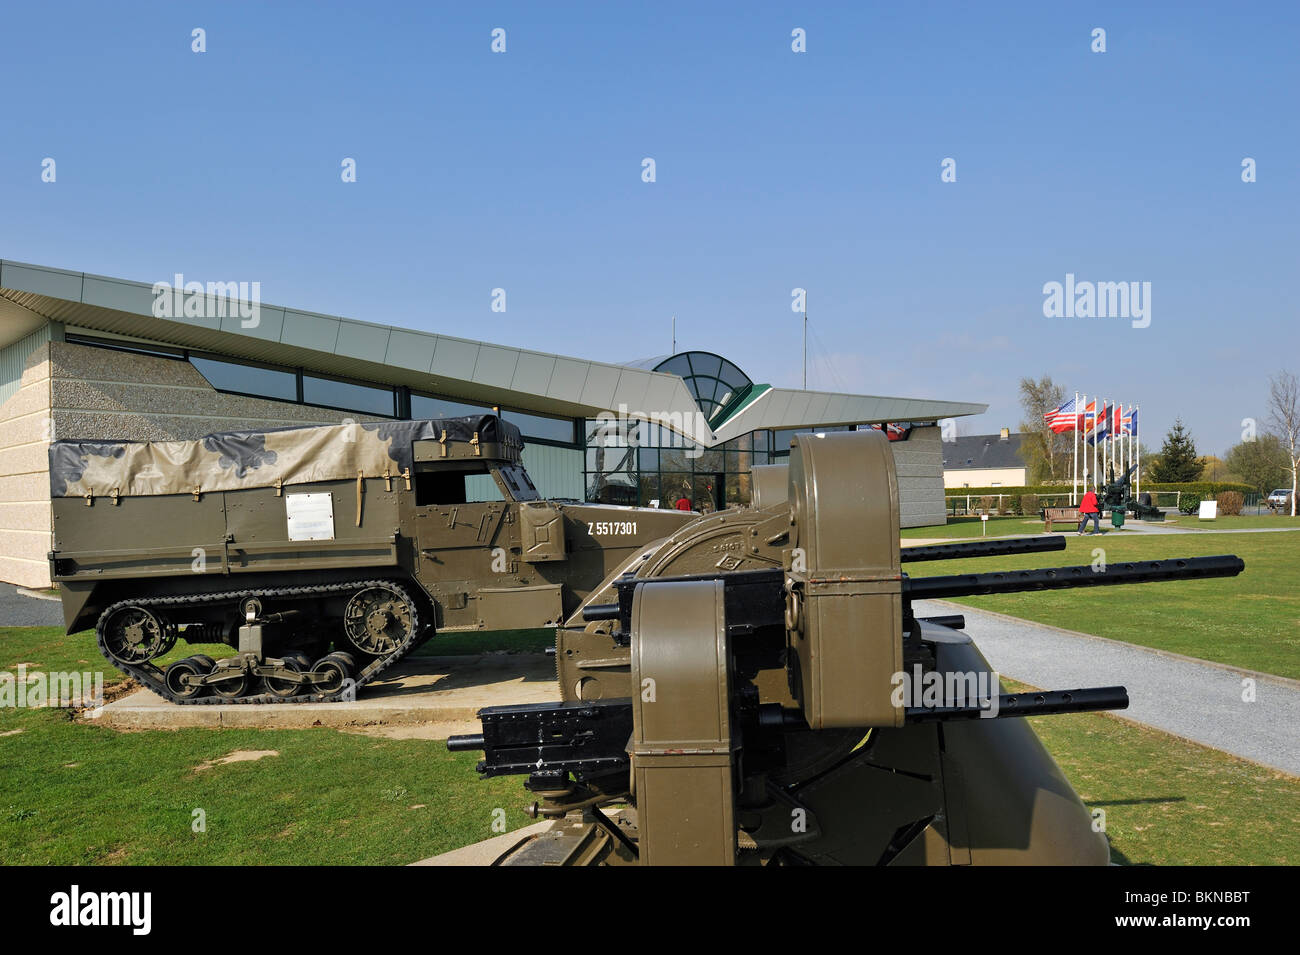 WW2 cannon and half-track armoured fighting vehicle at the World War Two Pegasus Museum near Ouistreham, Normandy, - Stock Image